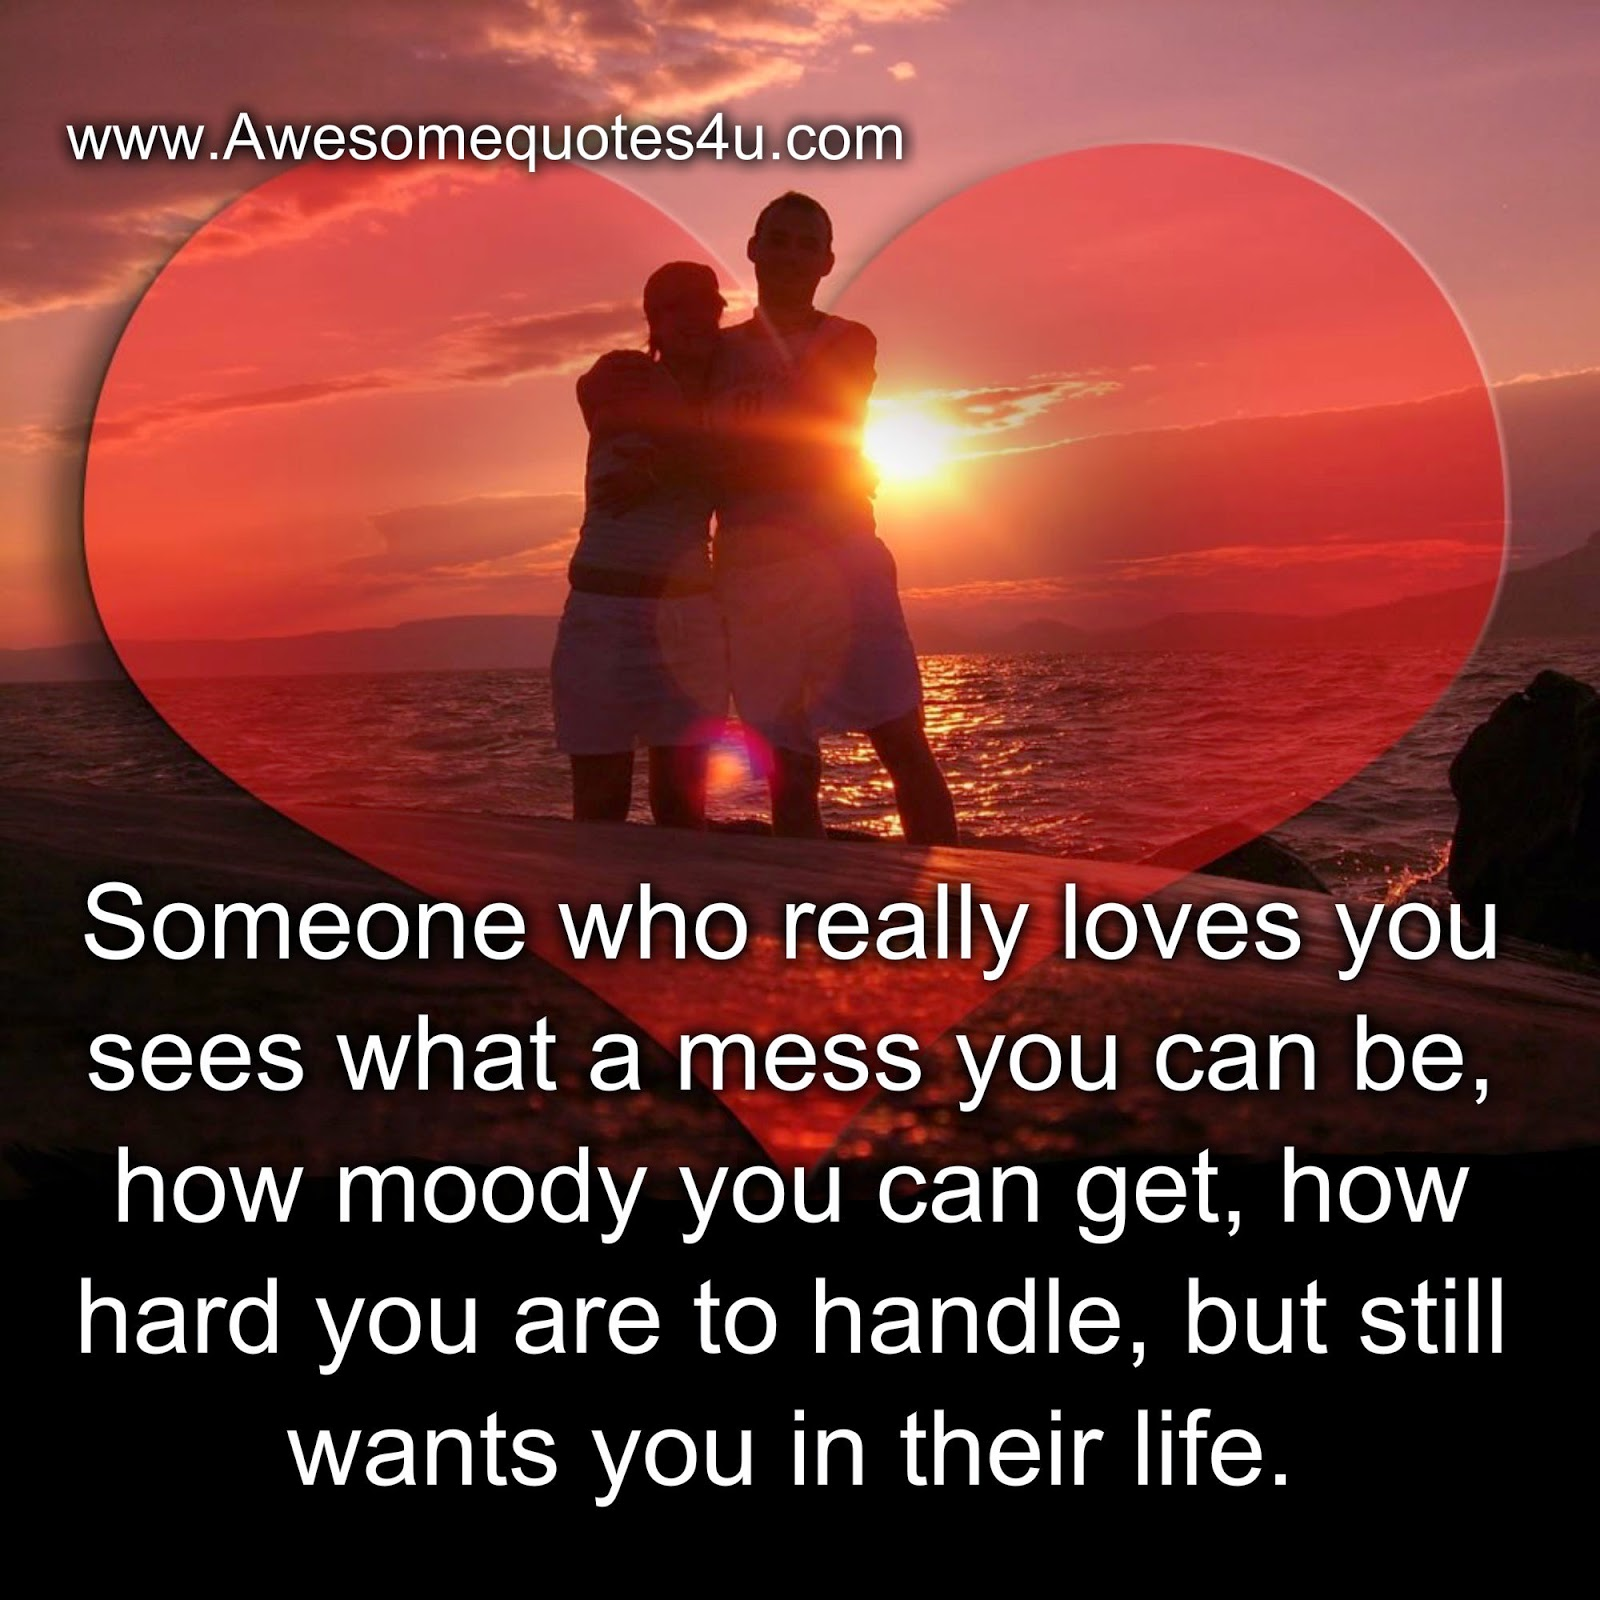 Awesome Quotes: Someone Who Really Loves You